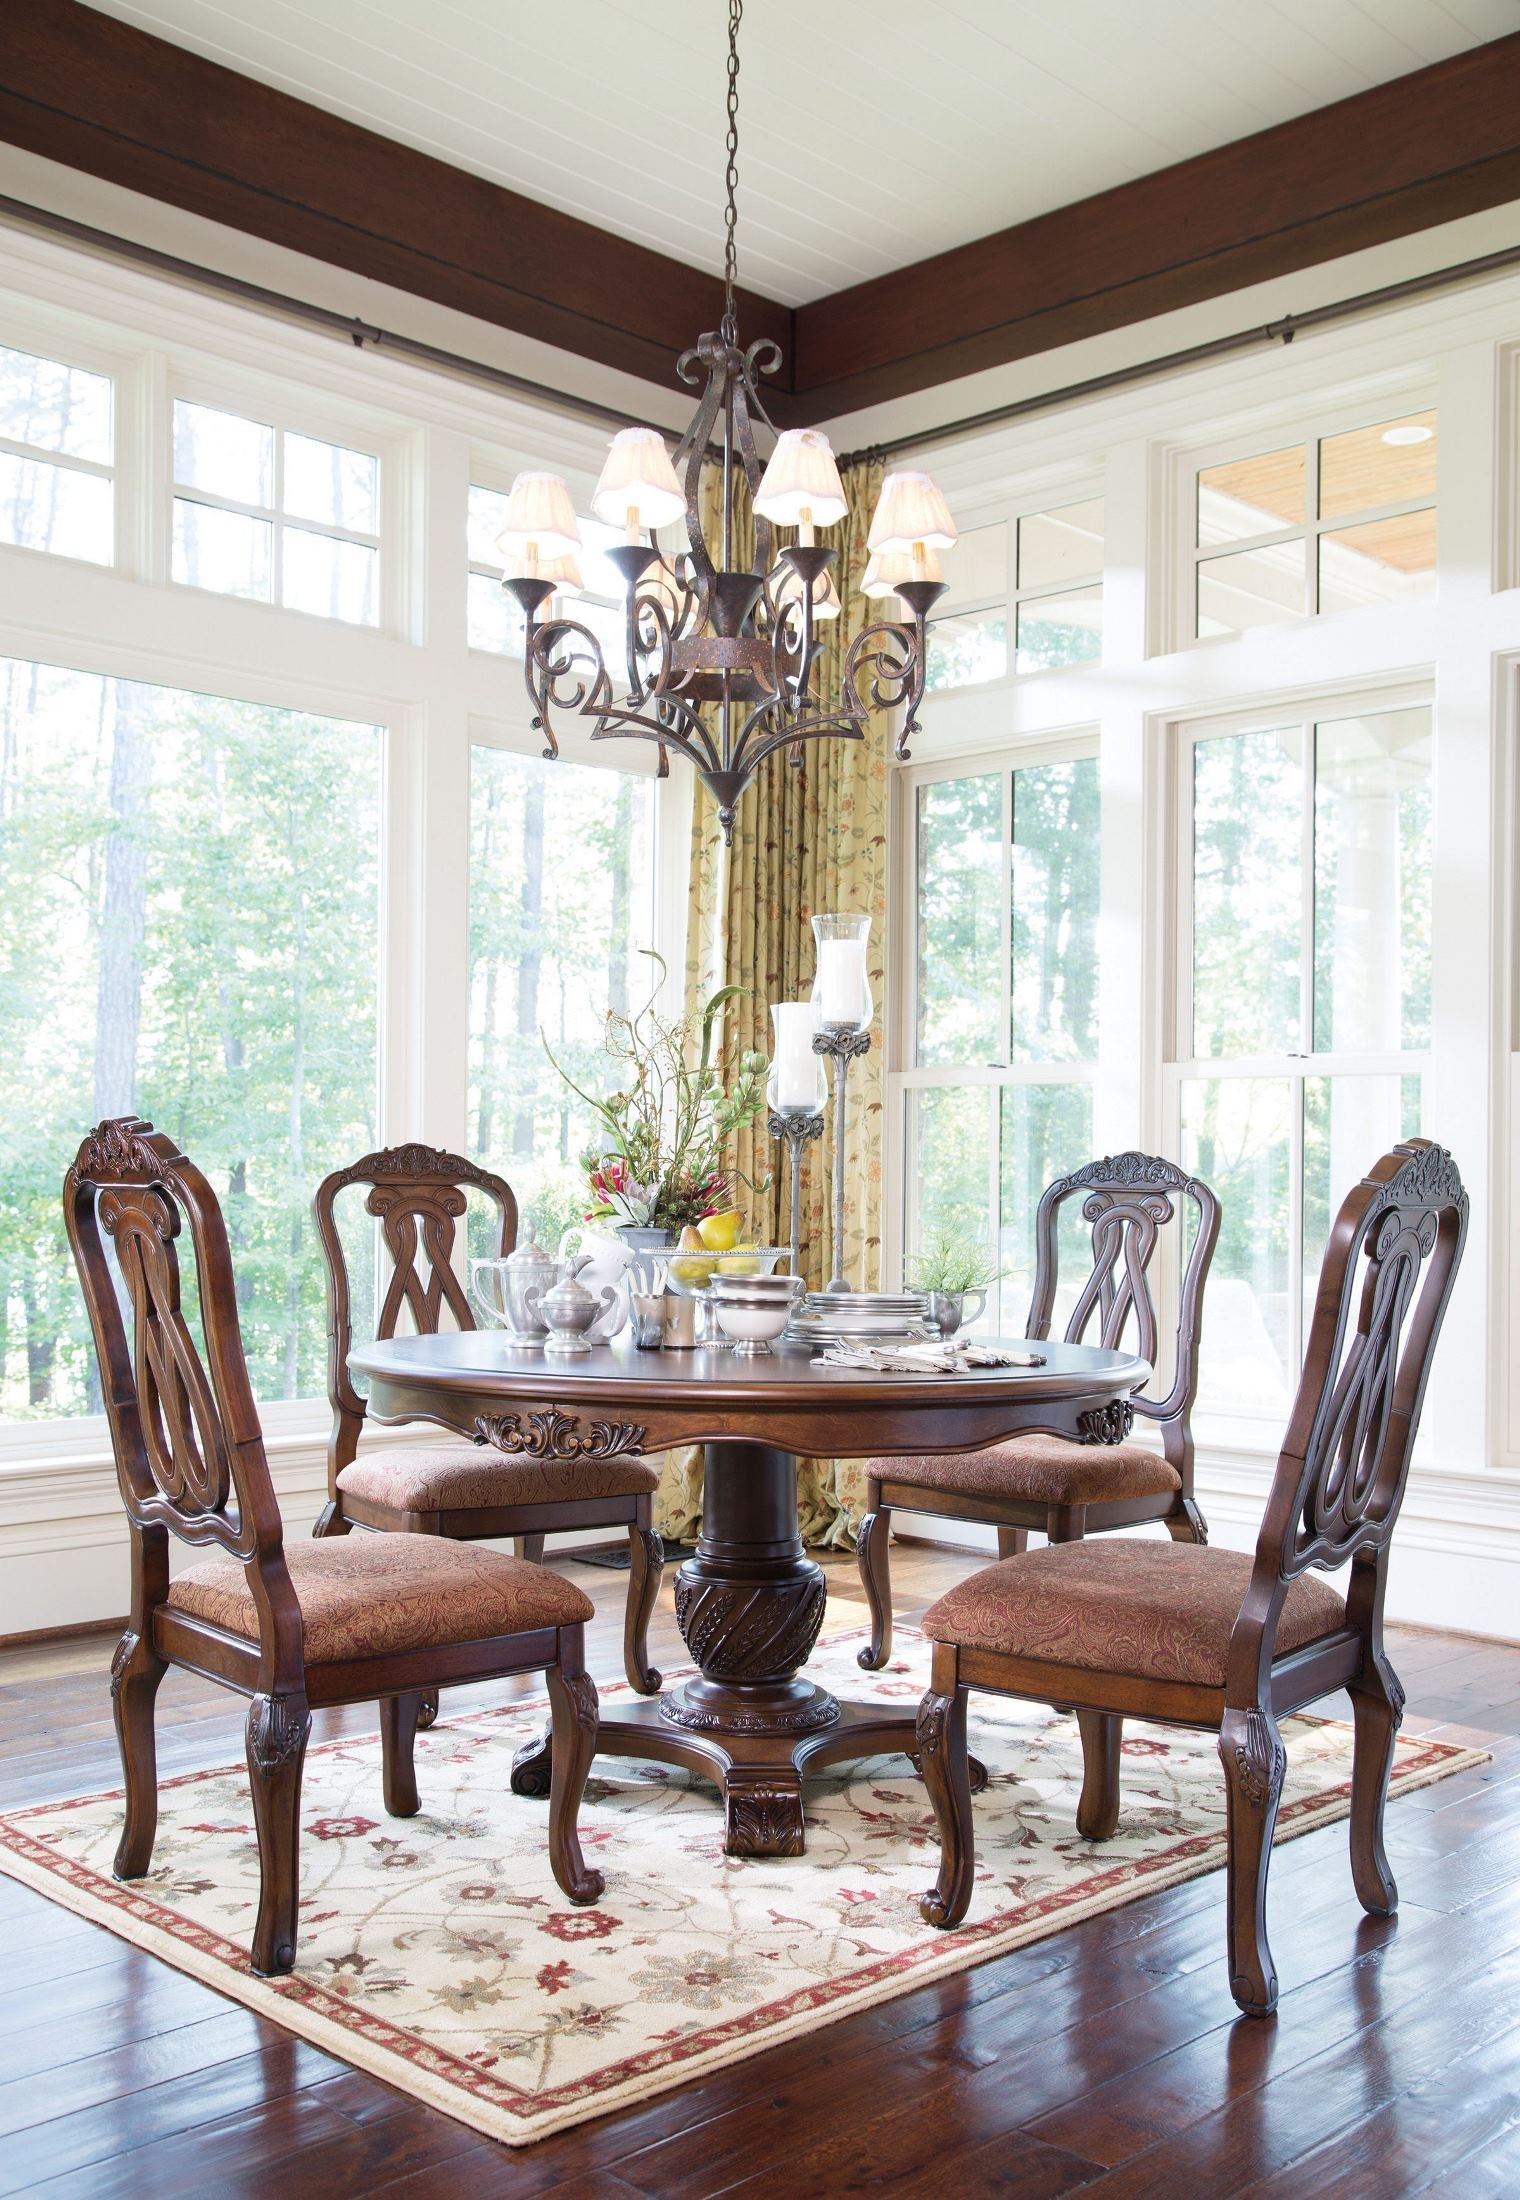 North shore round pedestal dining room set from ashley d553 50t 50b coleman furniture - Ashley north shore dining room set ...